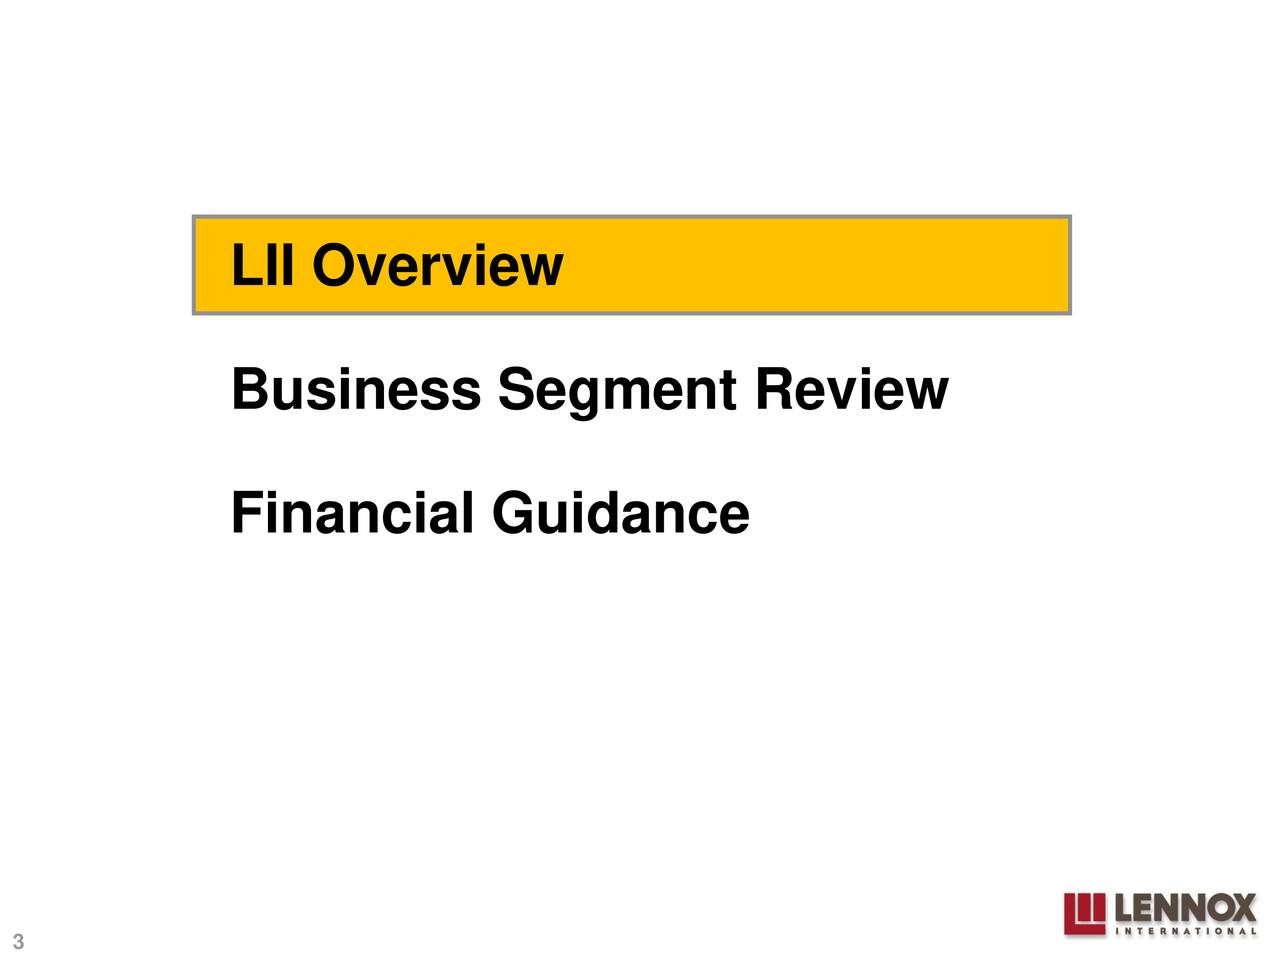 LII Overview